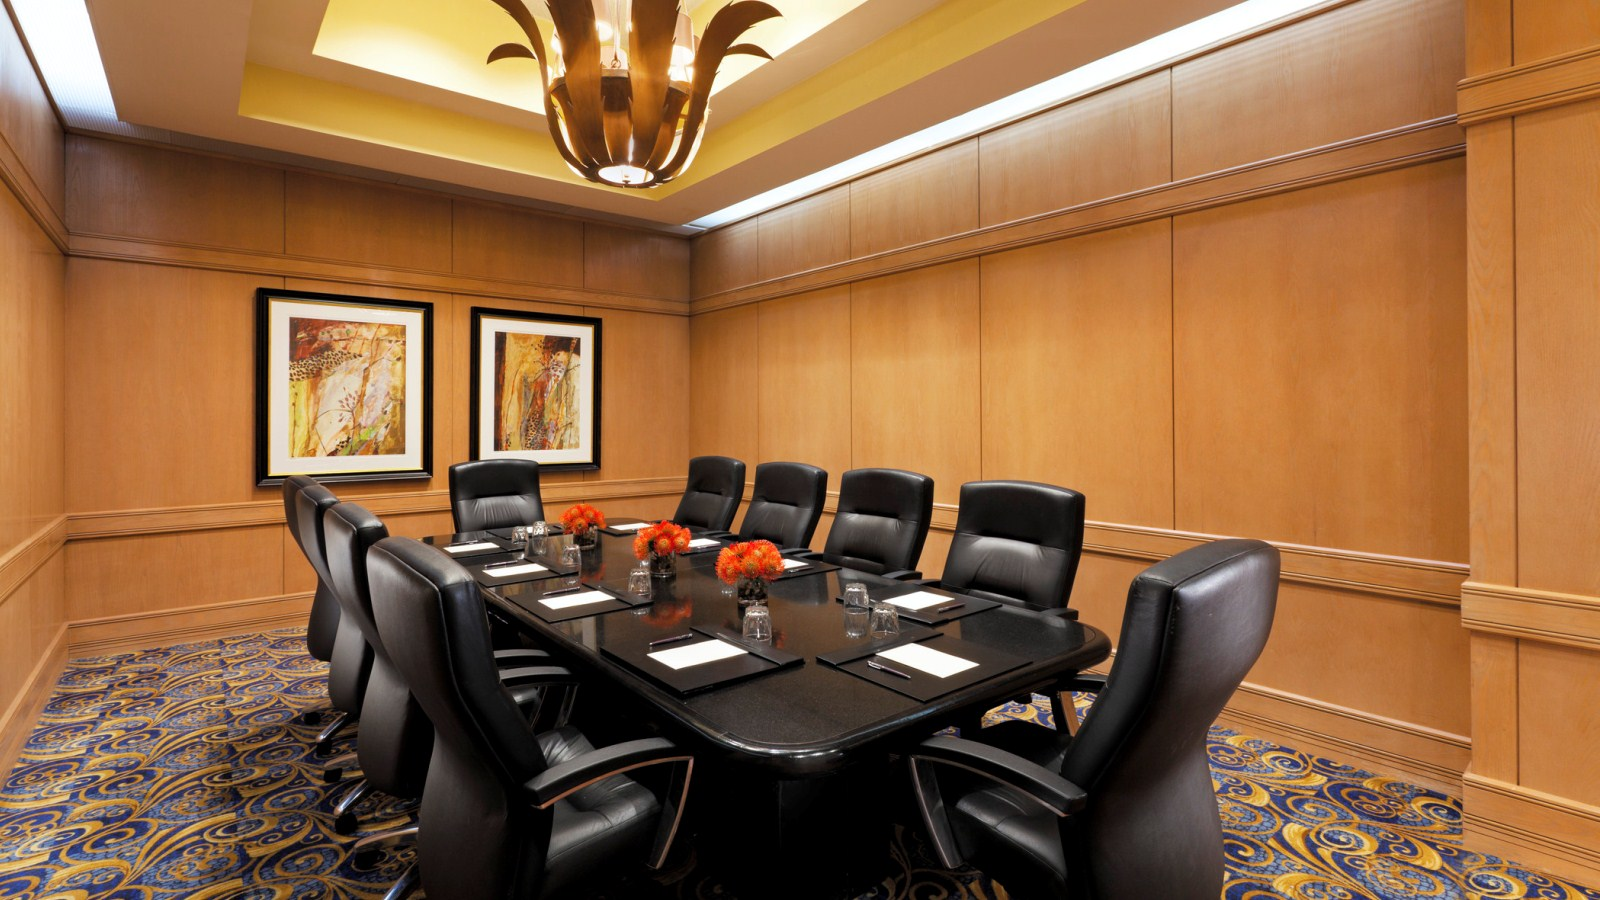 Sheraton Crescent Hotel - Meetings